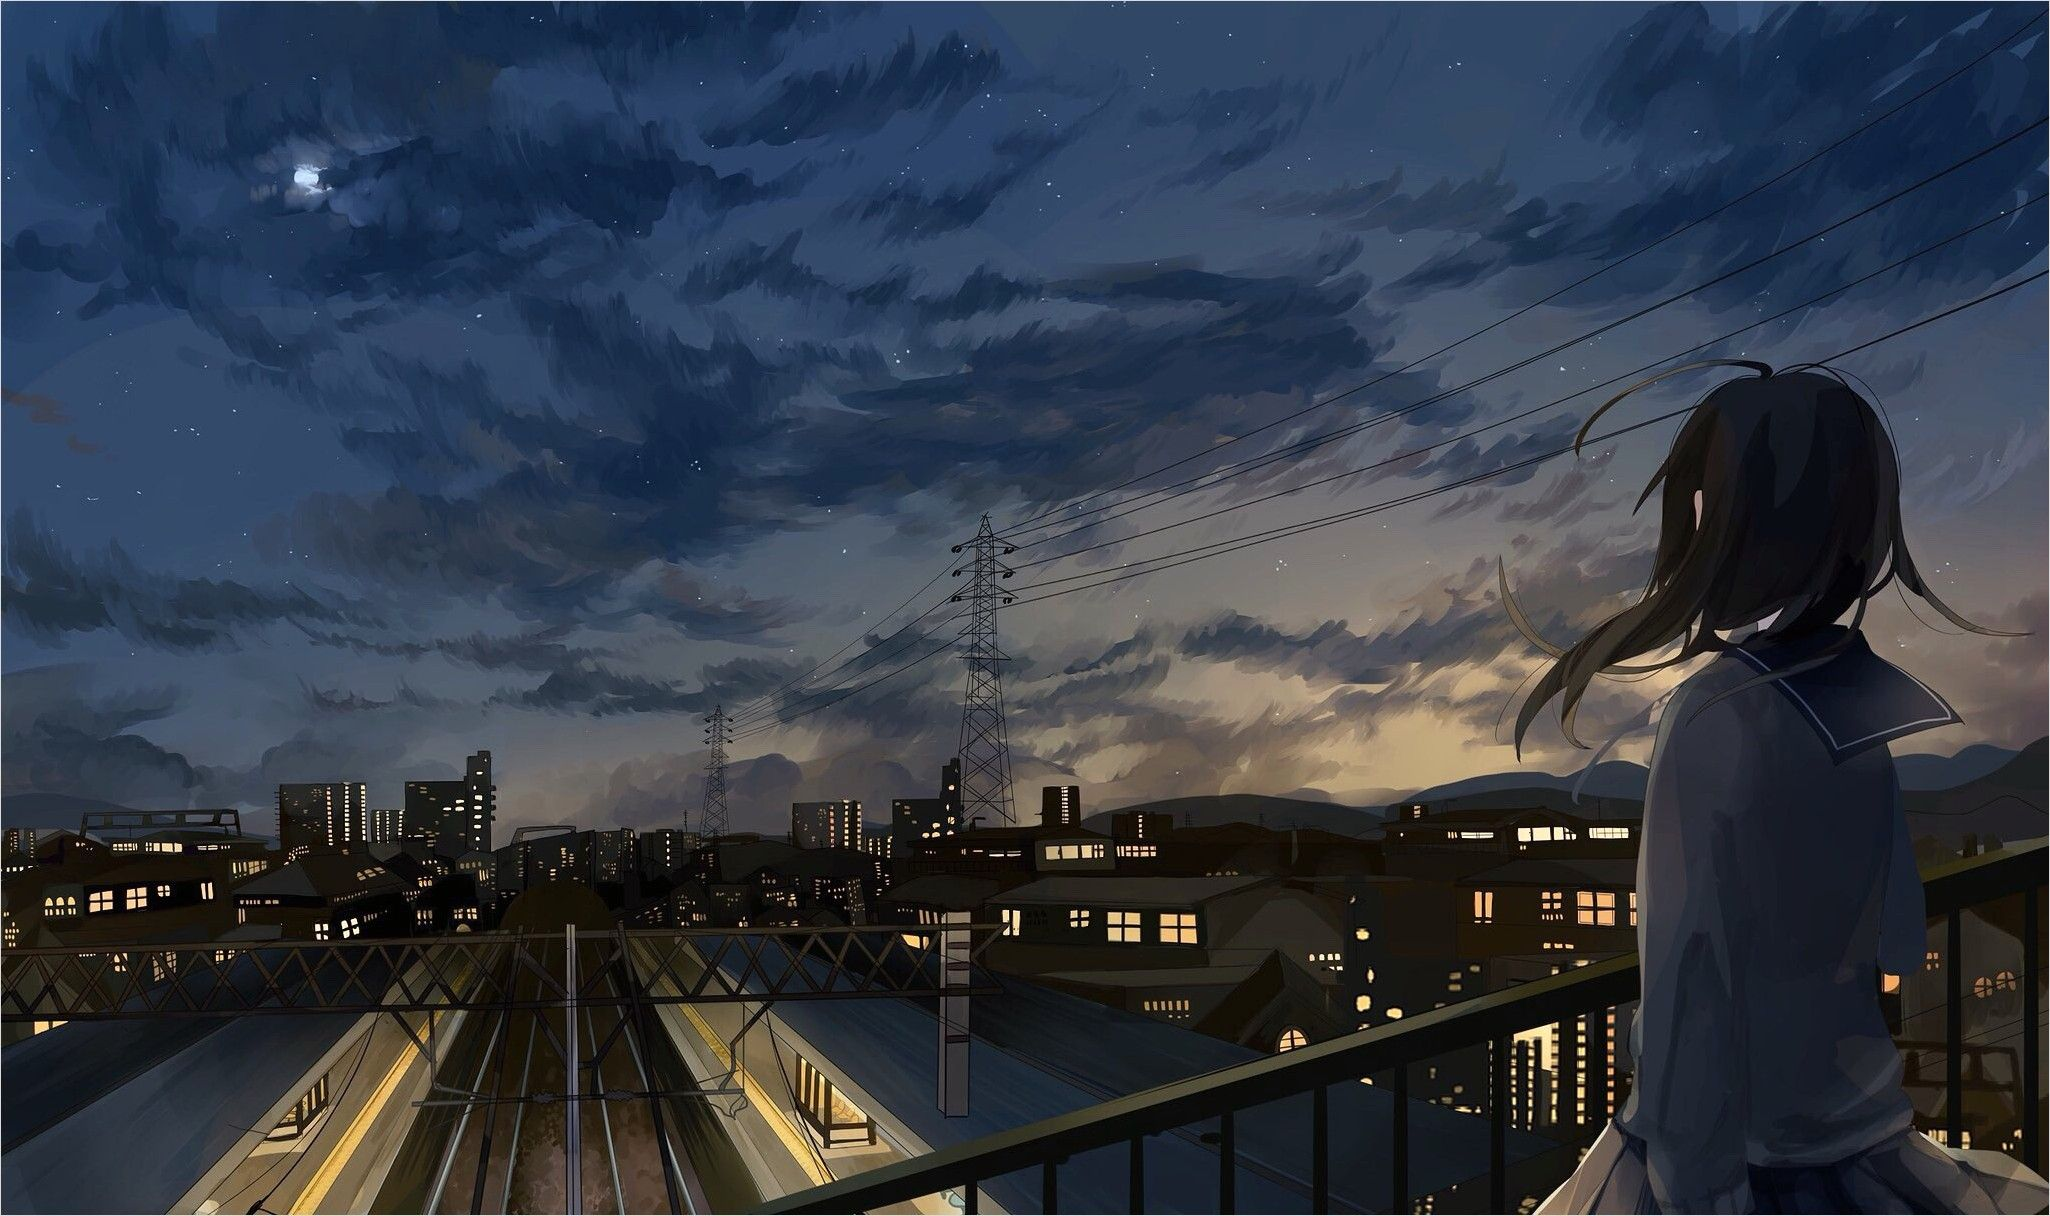 4k Anime City Wallpaper in 2020 Anime city, Anime